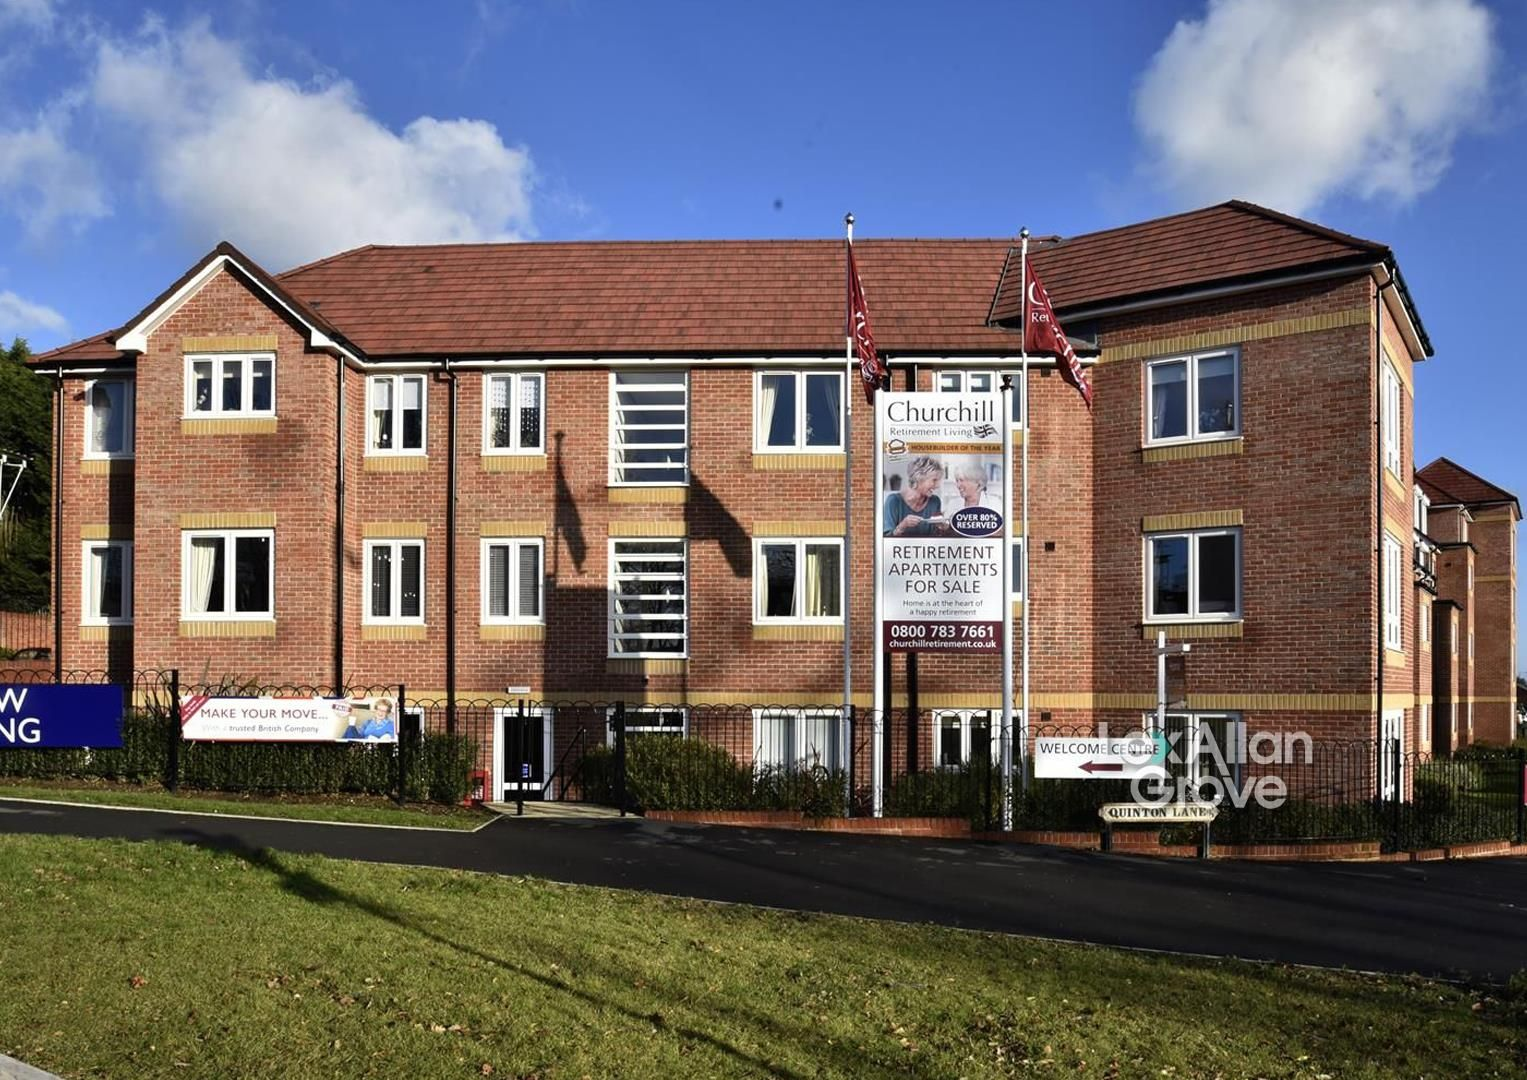 2 bed apartment for sale, B32